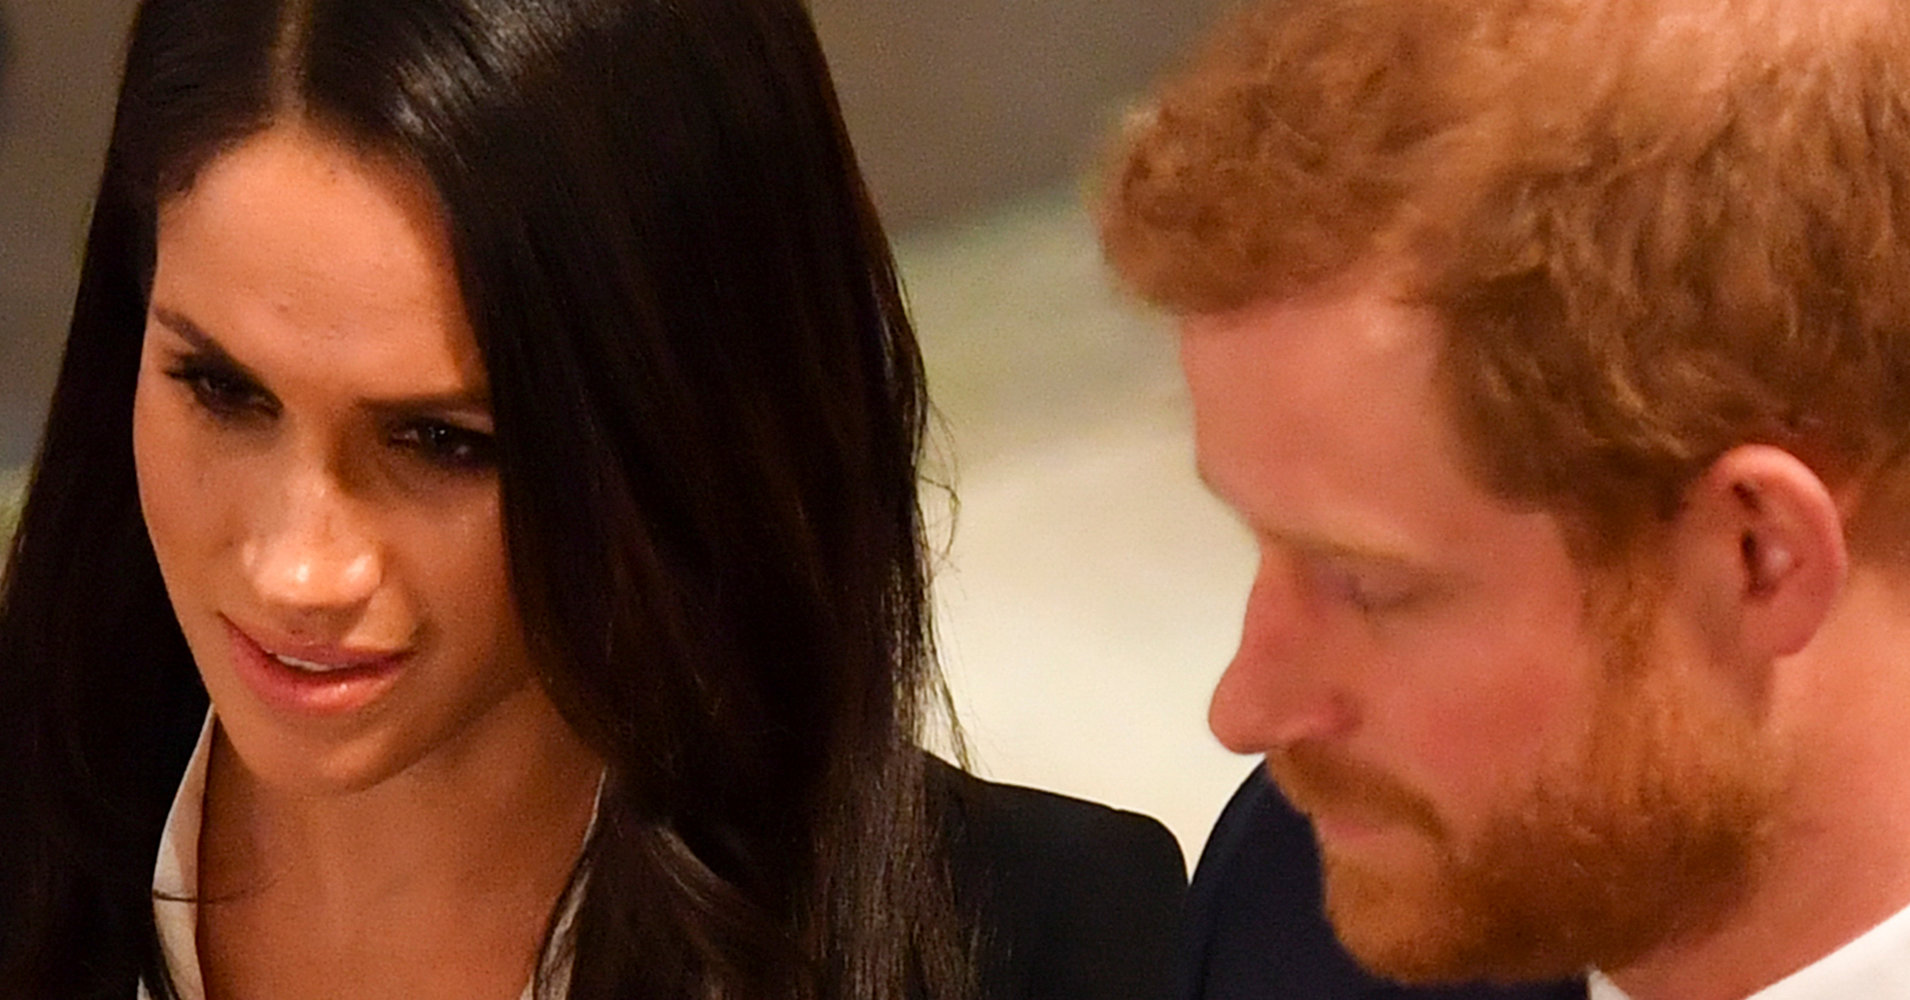 Twitter Permanently Bans GOP Candidate For Racist Meghan Markle Tweet